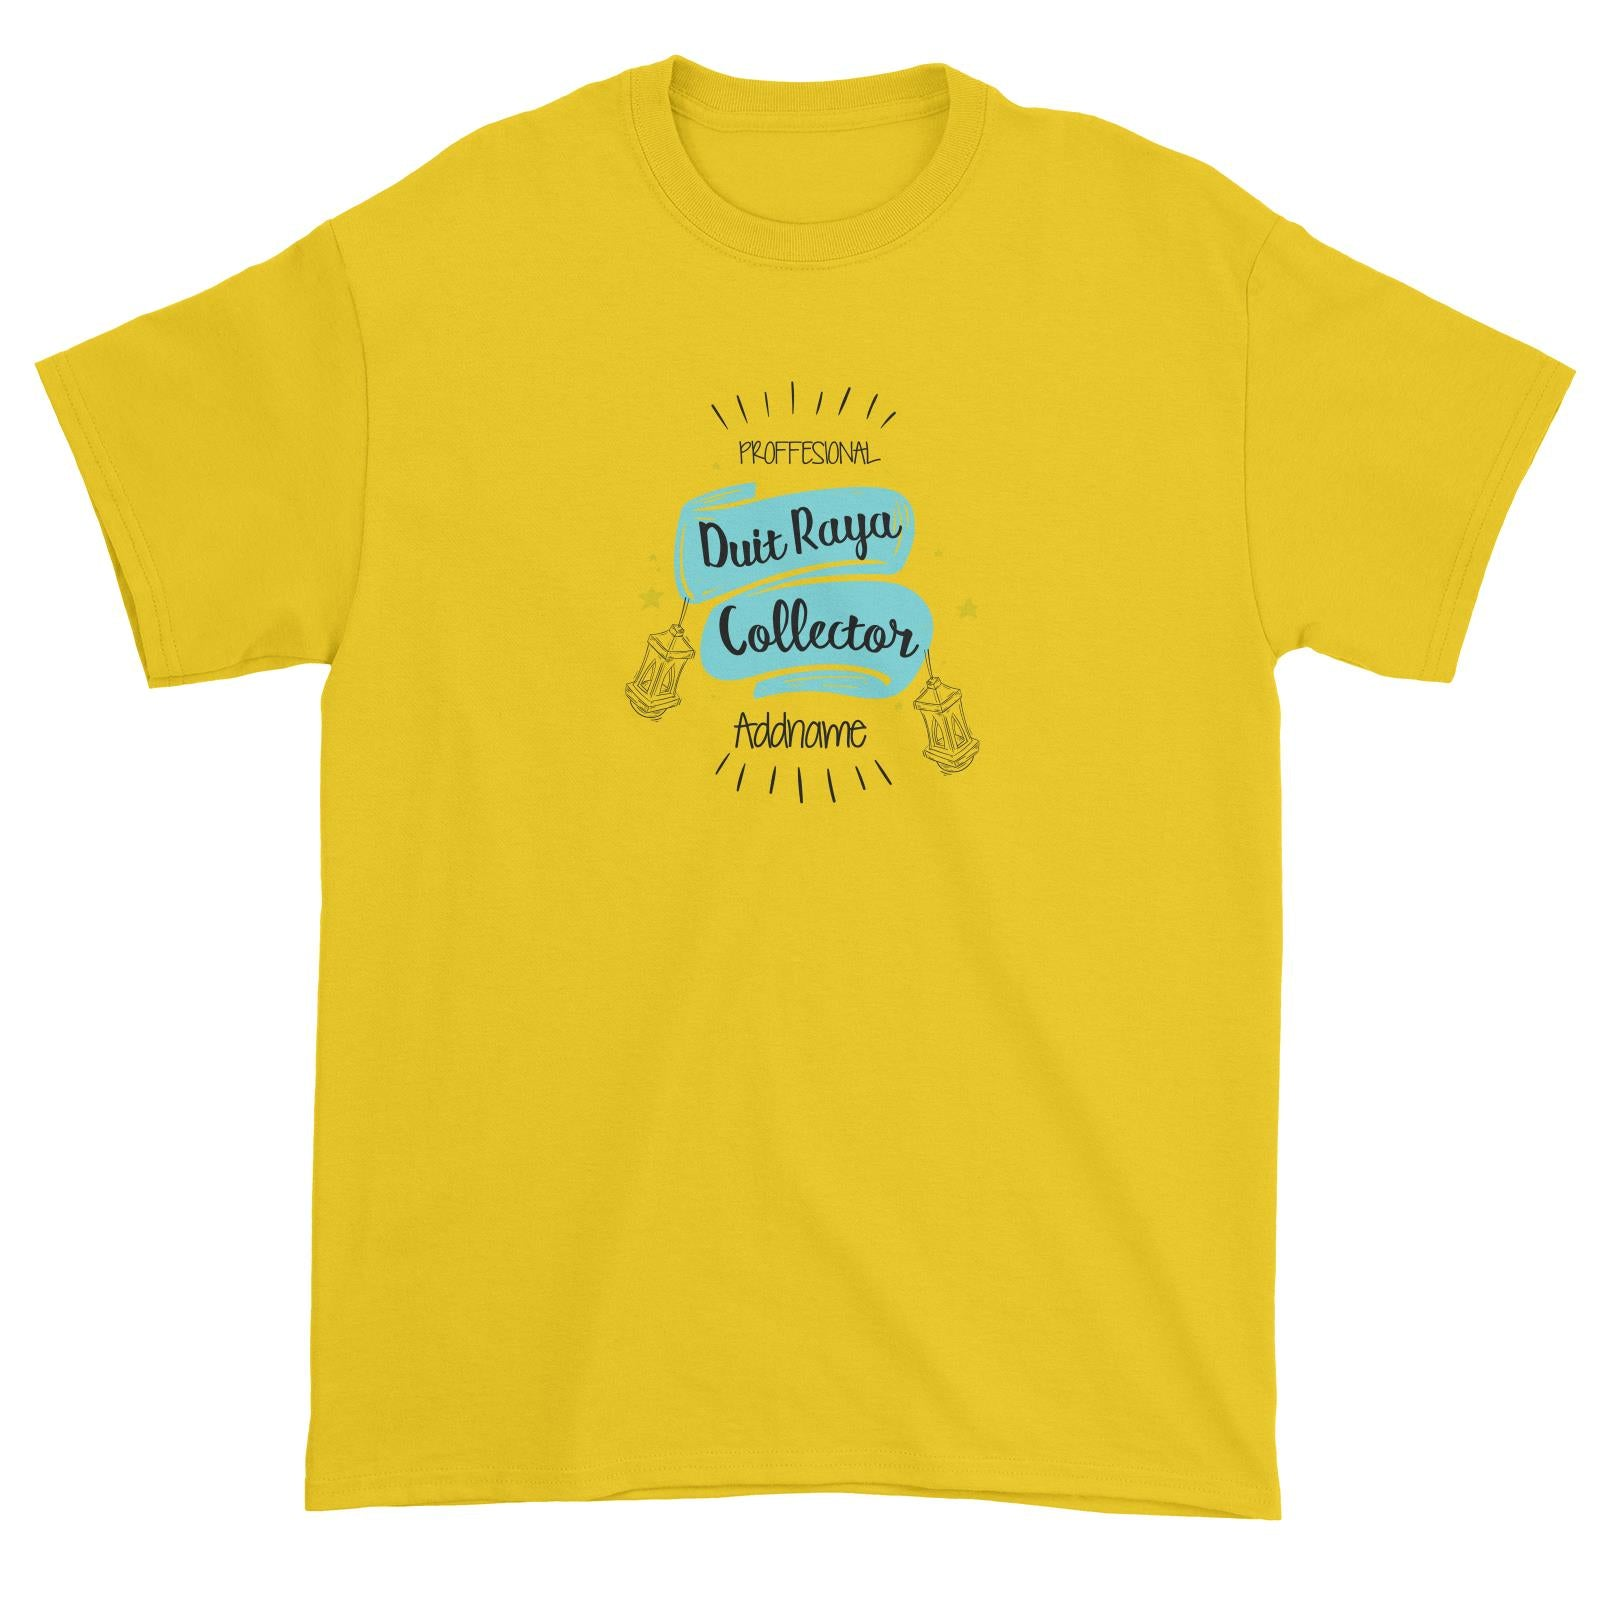 Raya Banner Professional Duit Raya Collector Addname Unisex T-Shirt